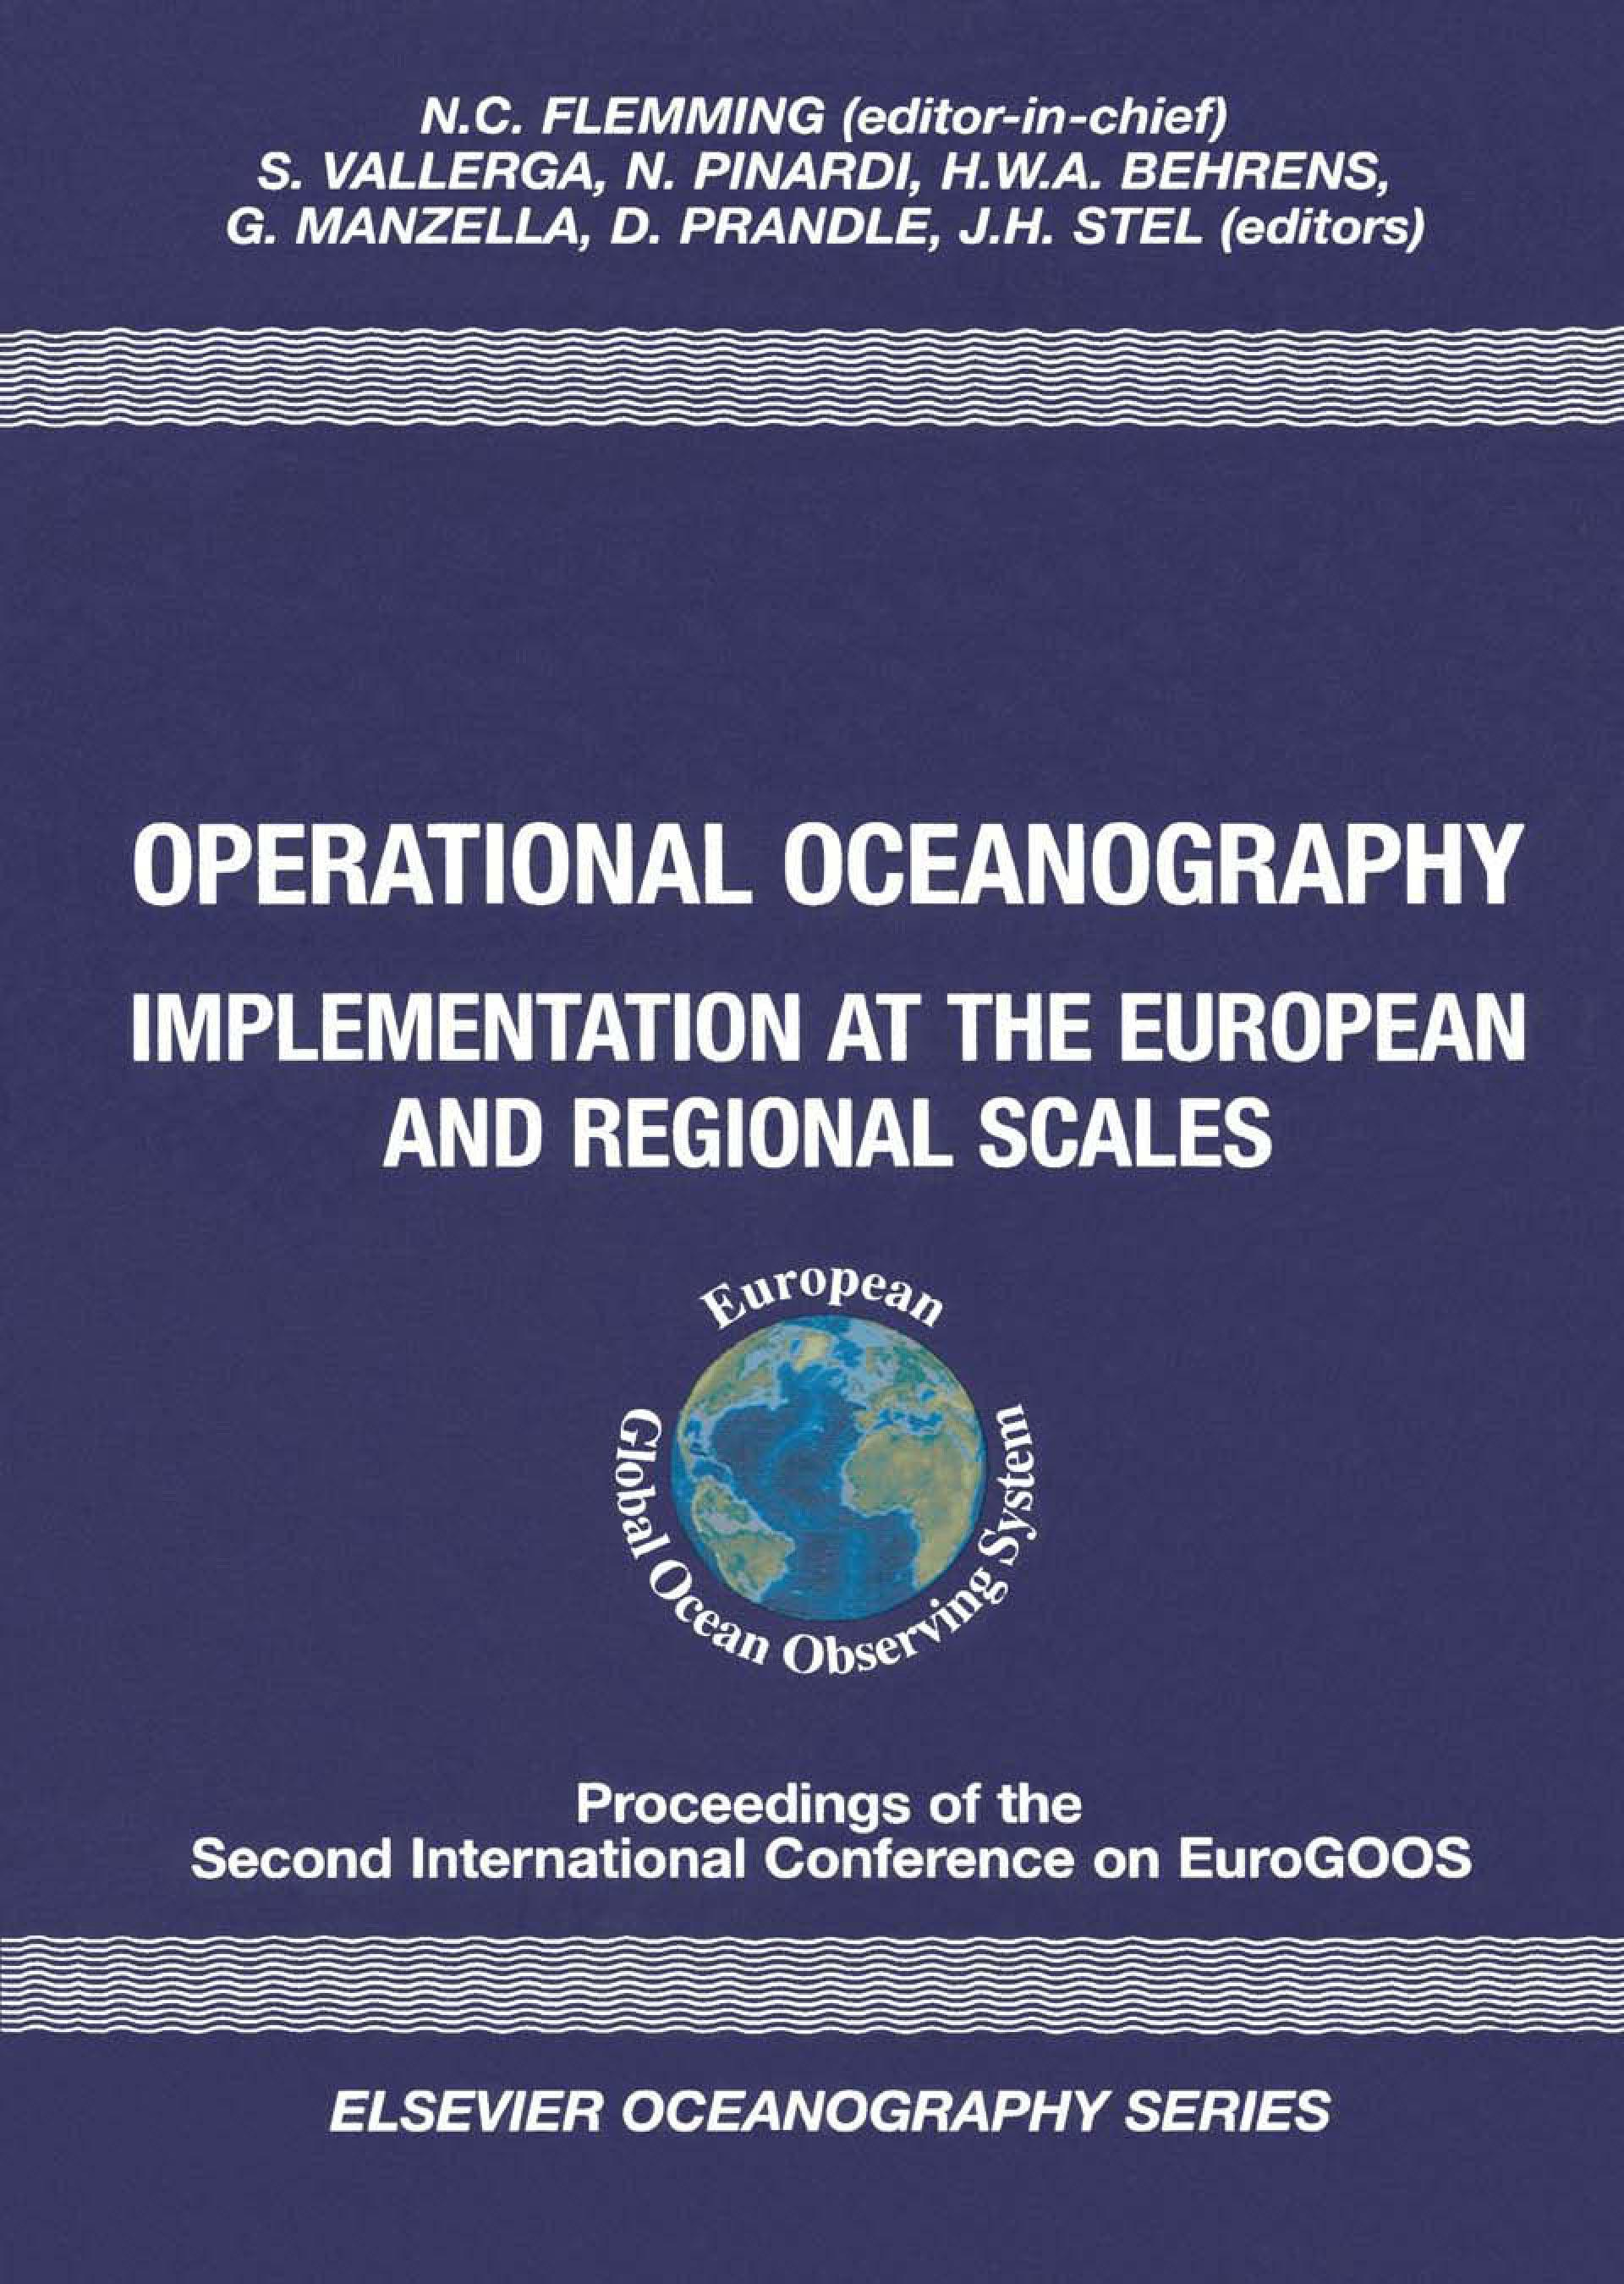 Operational Oceanography: Implementation at the European and Regional Scales